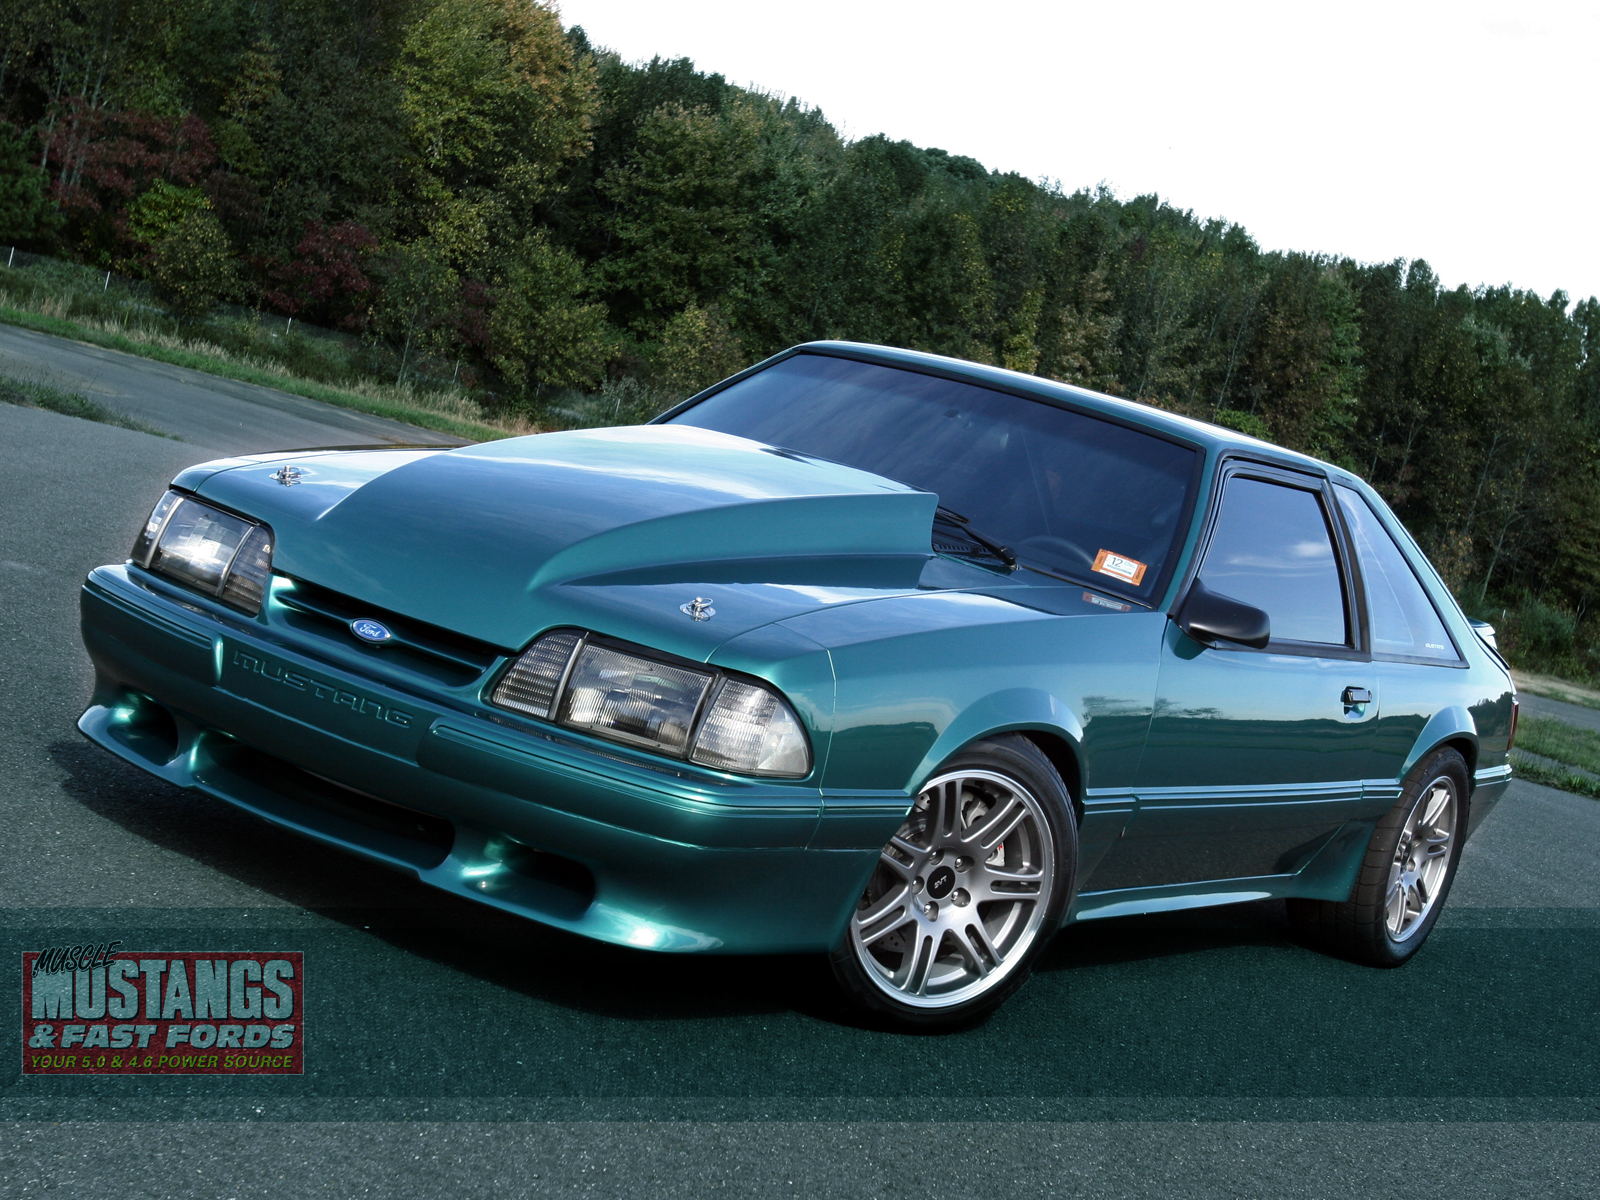 1988 1993 ford mustang gt image automotive enthusiasts mod db